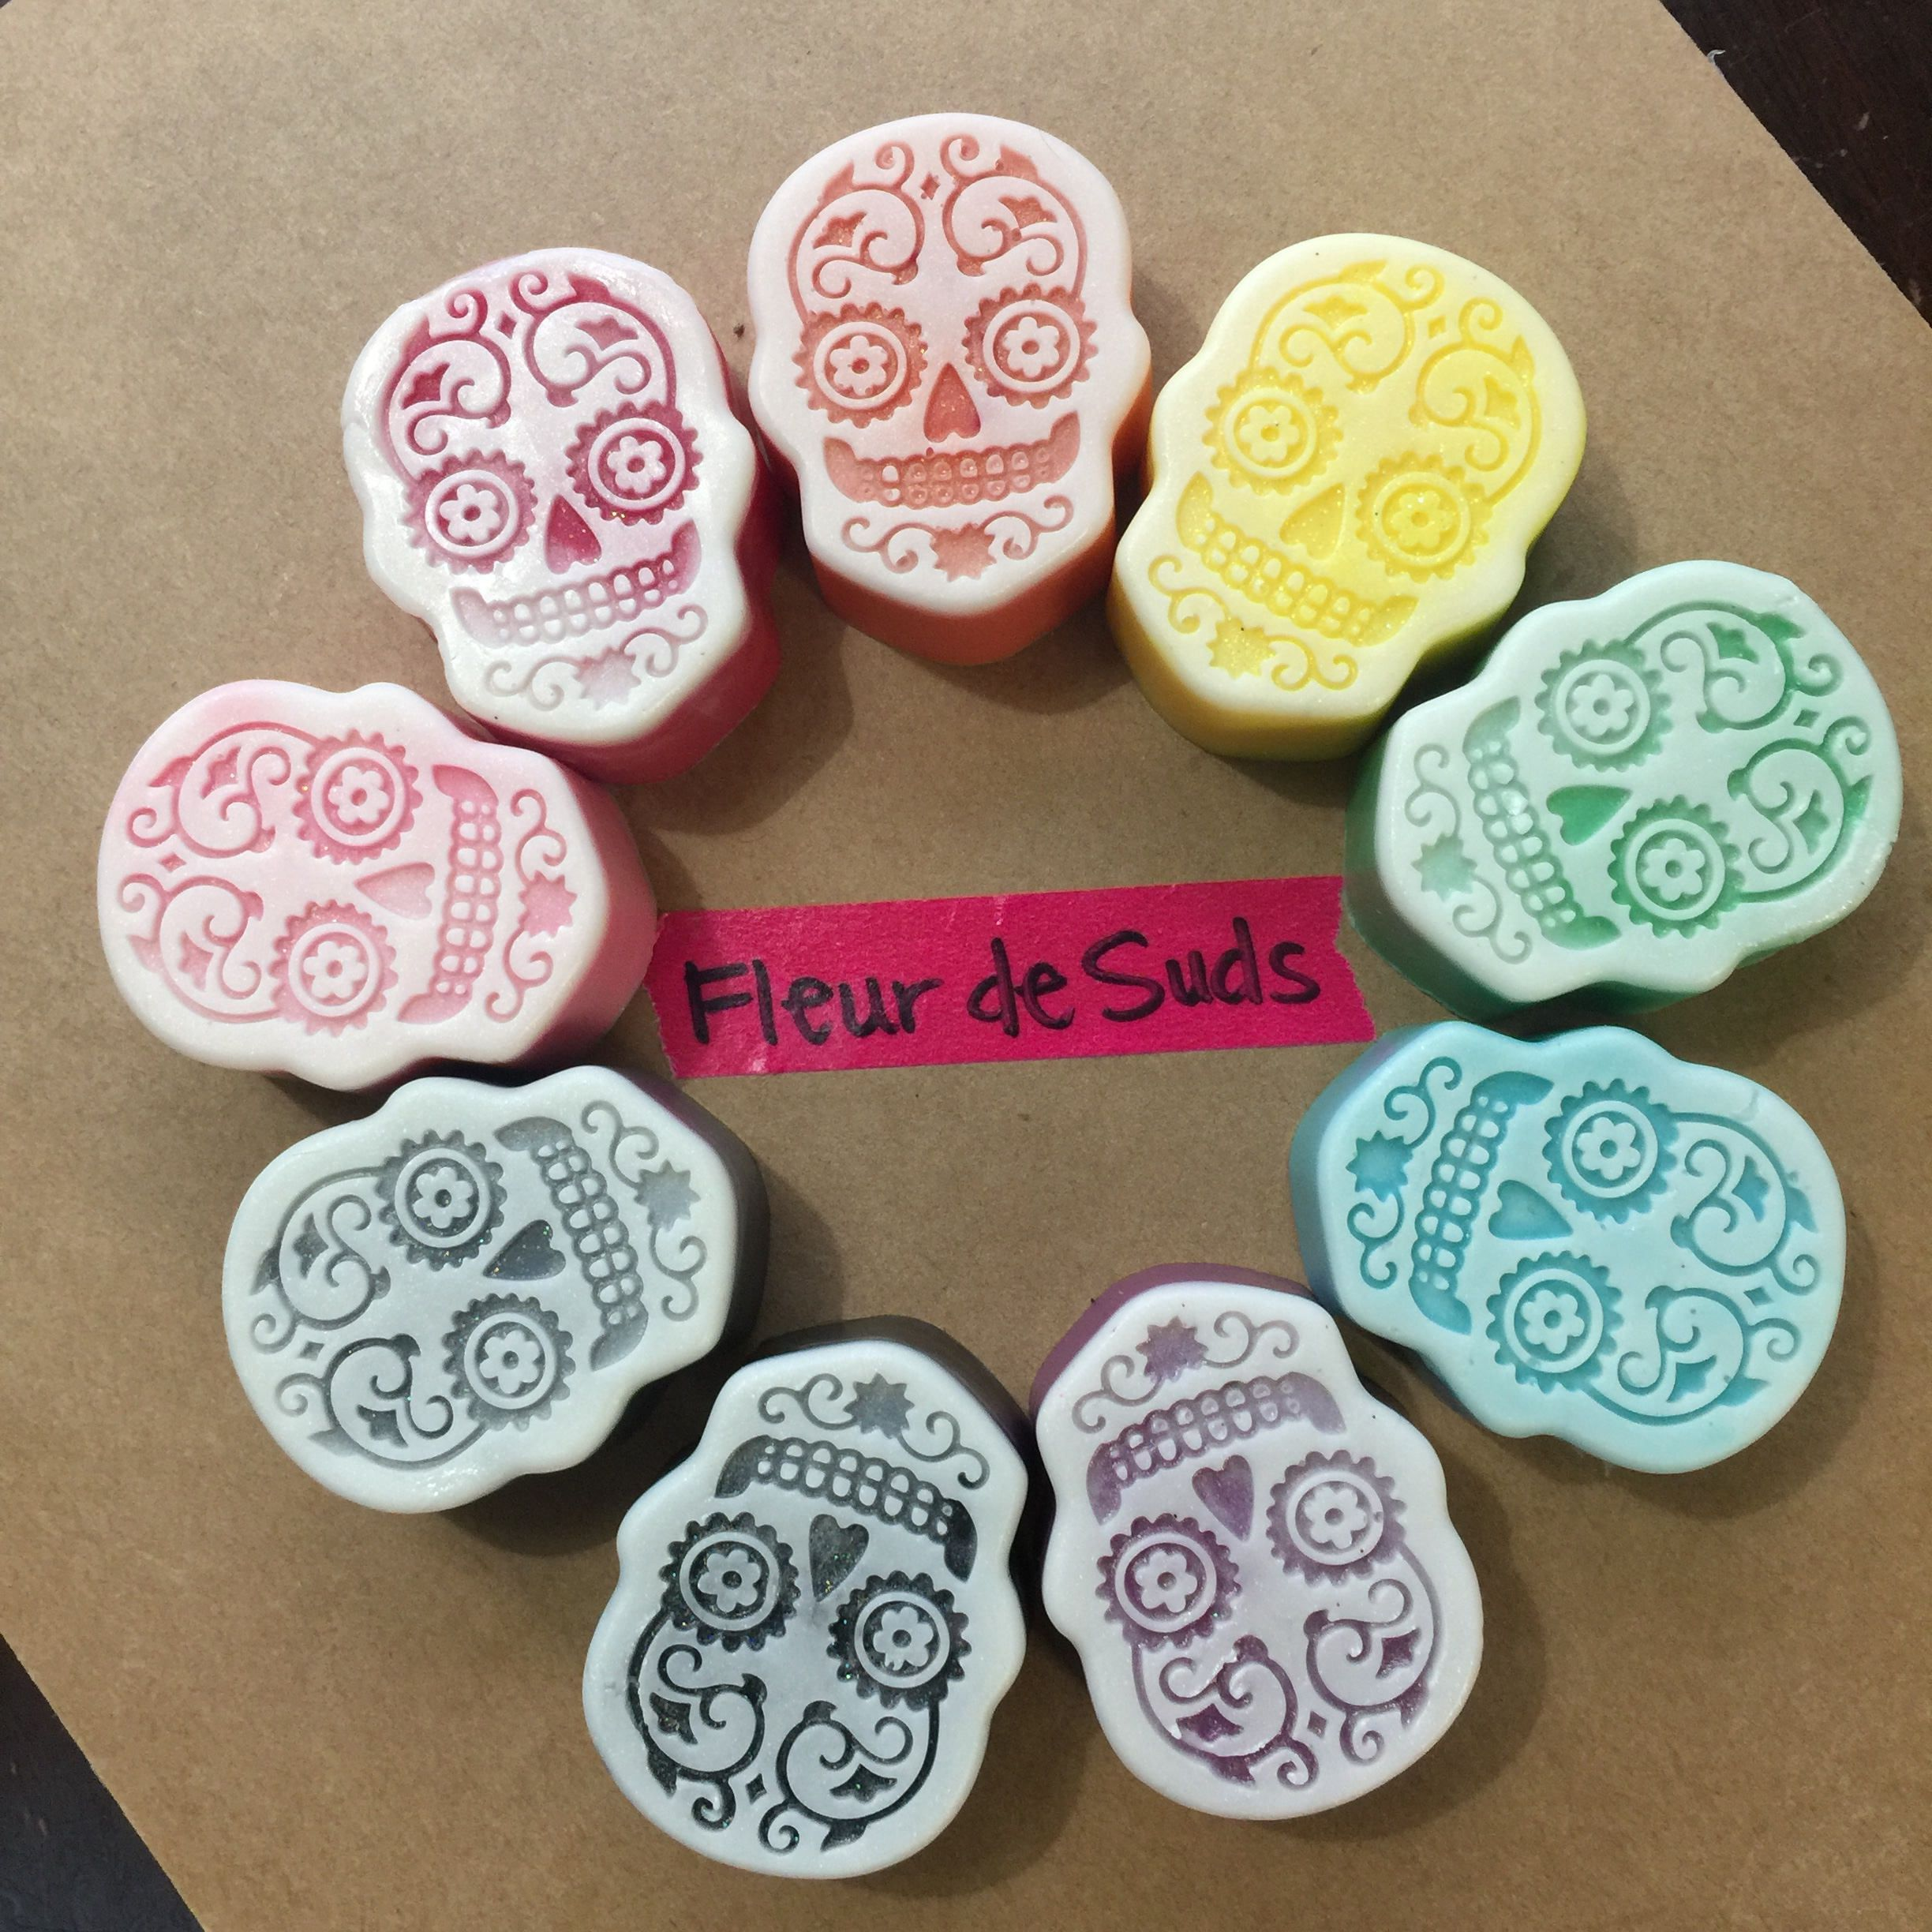 Pin by fleur de suds on etsy page pinterest sugar skulls and